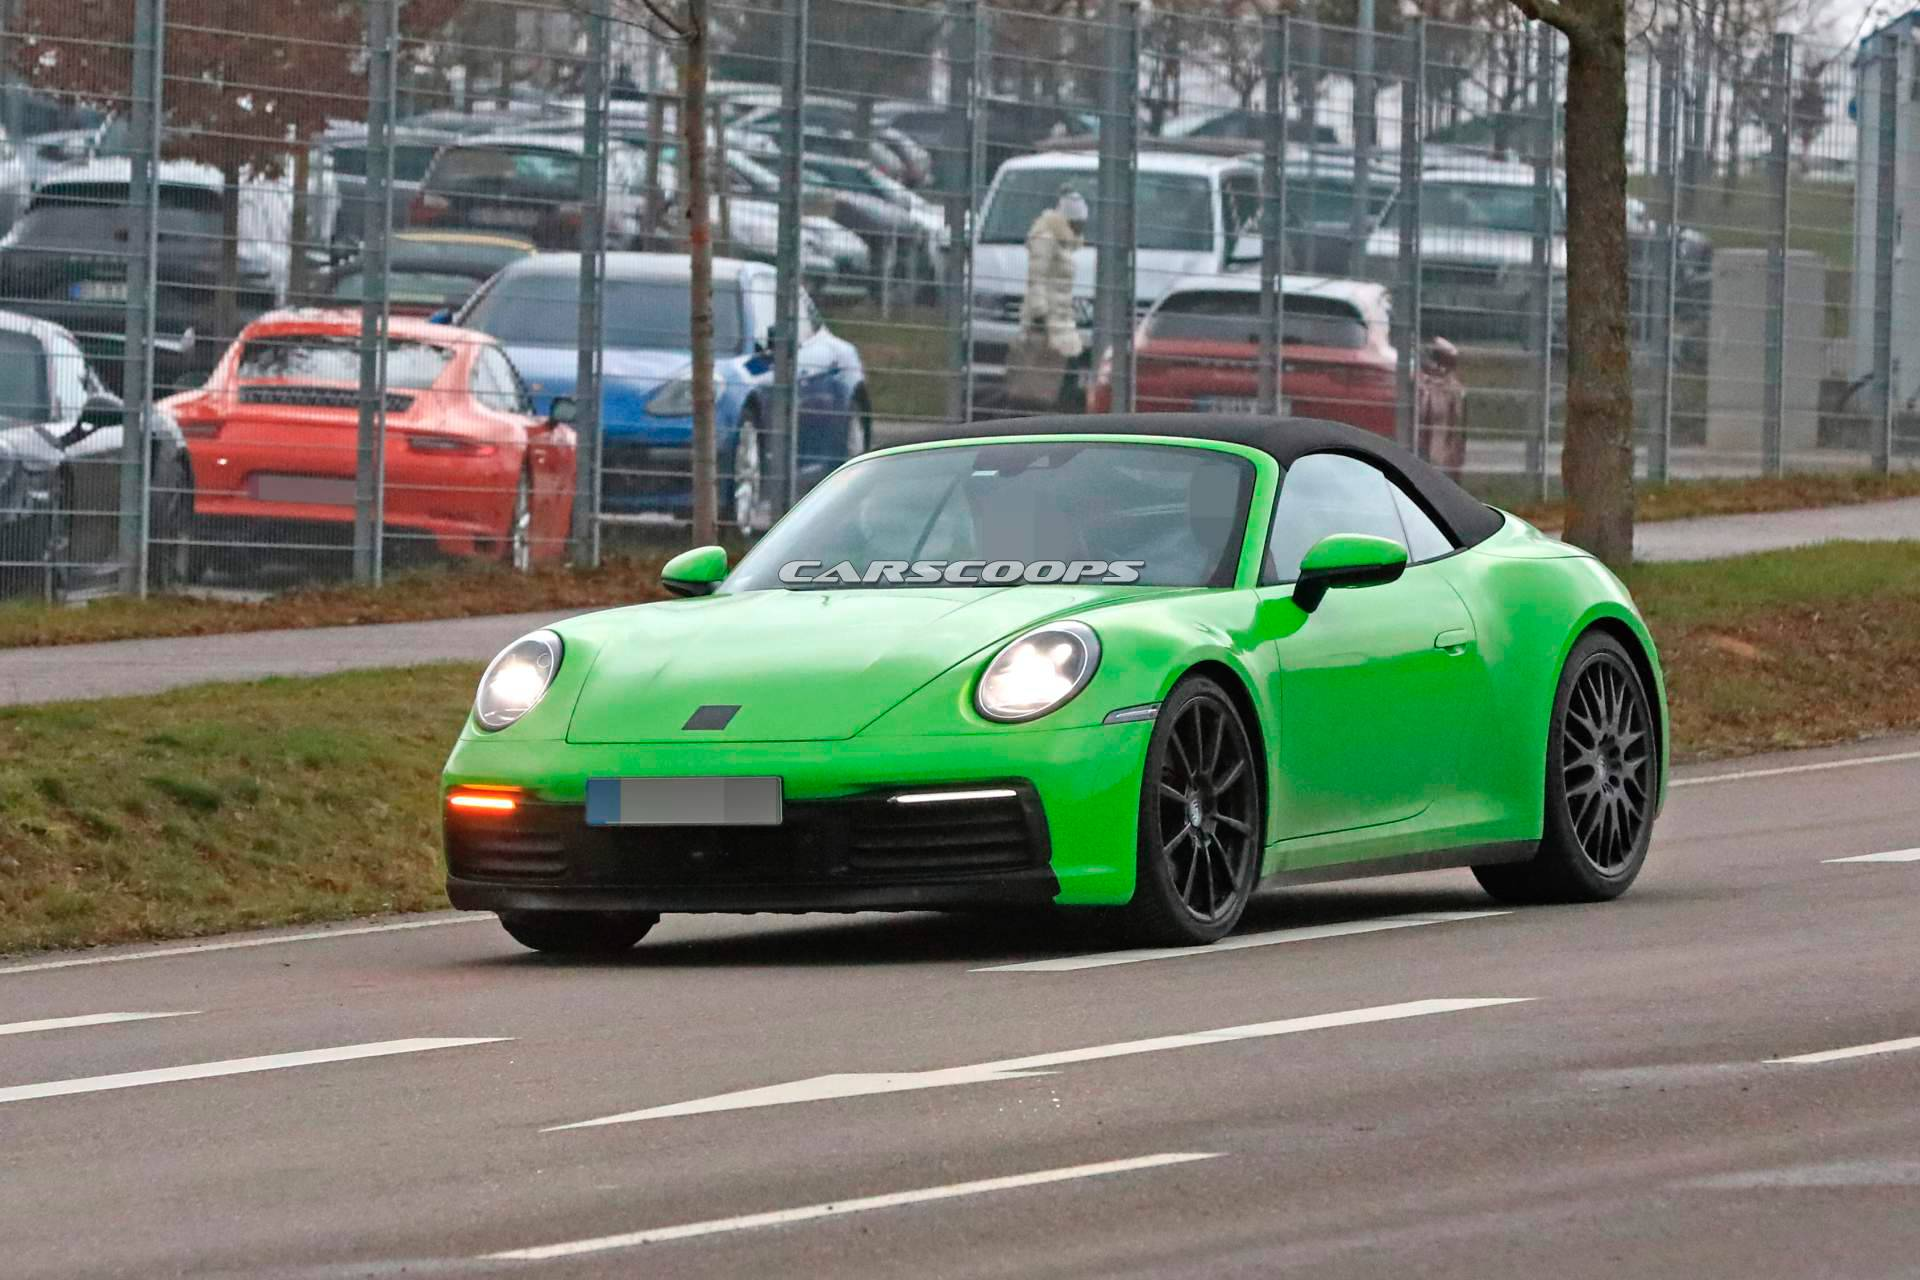 Based on the images that have recently leaked online, German luxury car maker Porsche has proceeded to the first road tests of its 911 Convertible model